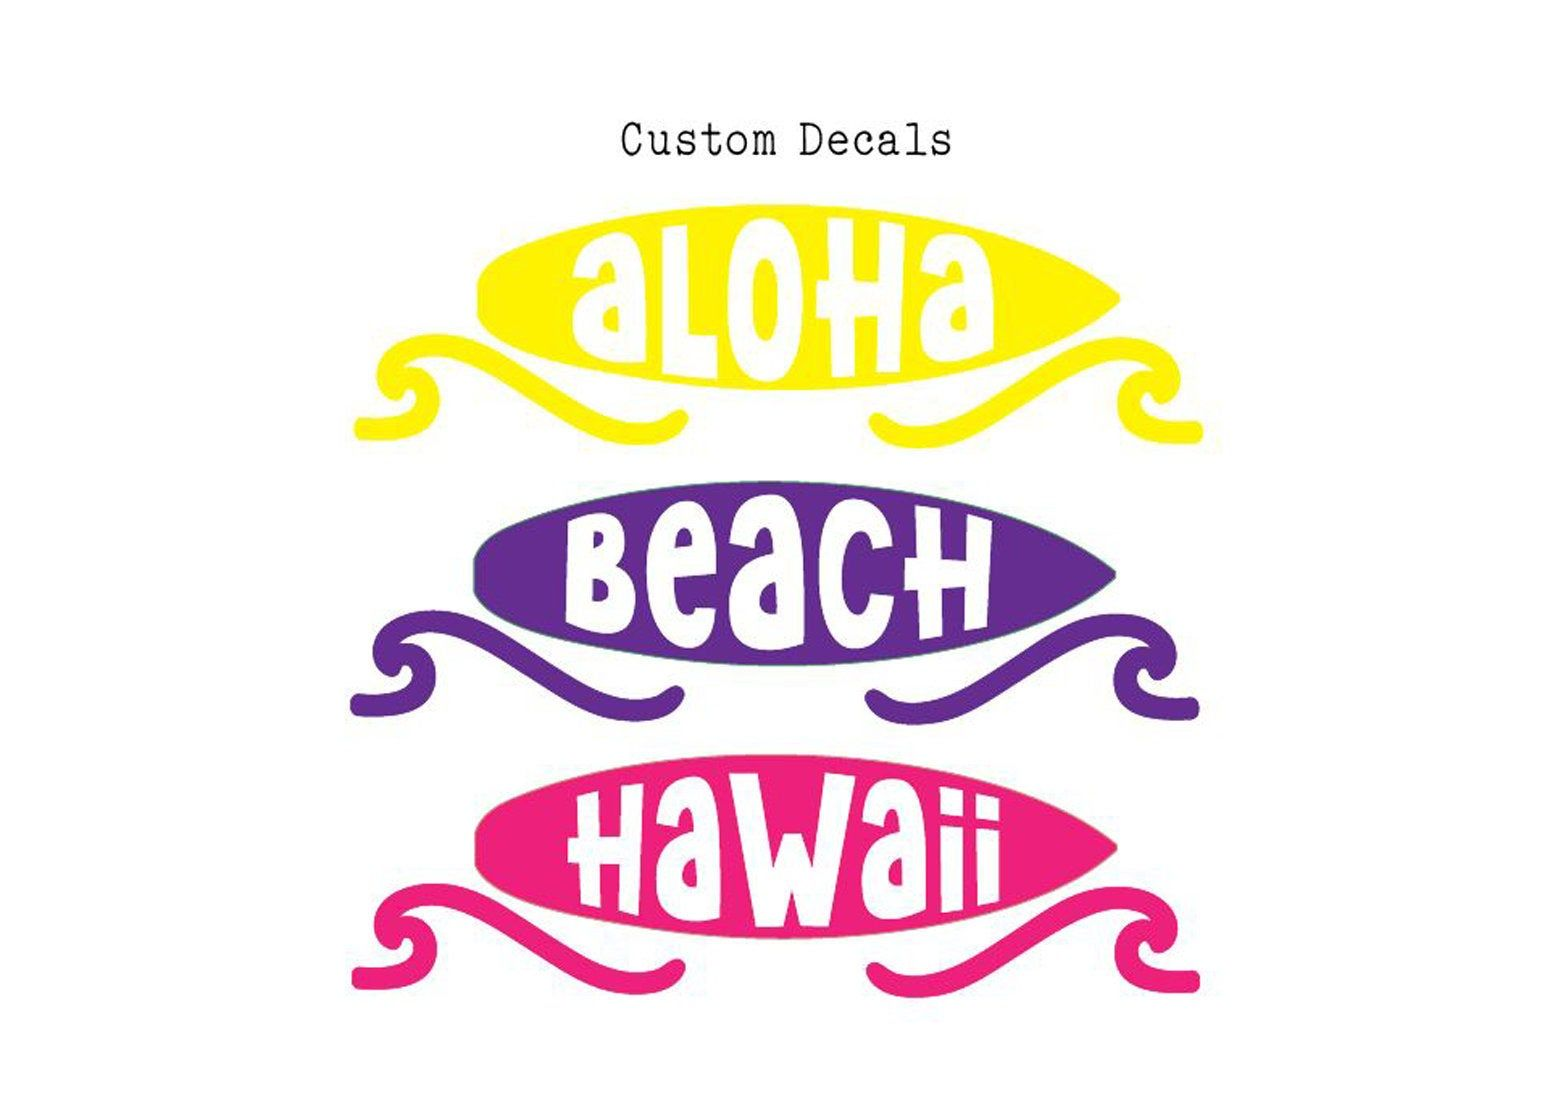 Surfs Up Decal, Surfer Decal, Childs Name Decal, Surfboard Decal, Laptop Sticker, Car Decal, Aloha Decal, Riptide, Custom Decal, Beach Life #surfsup